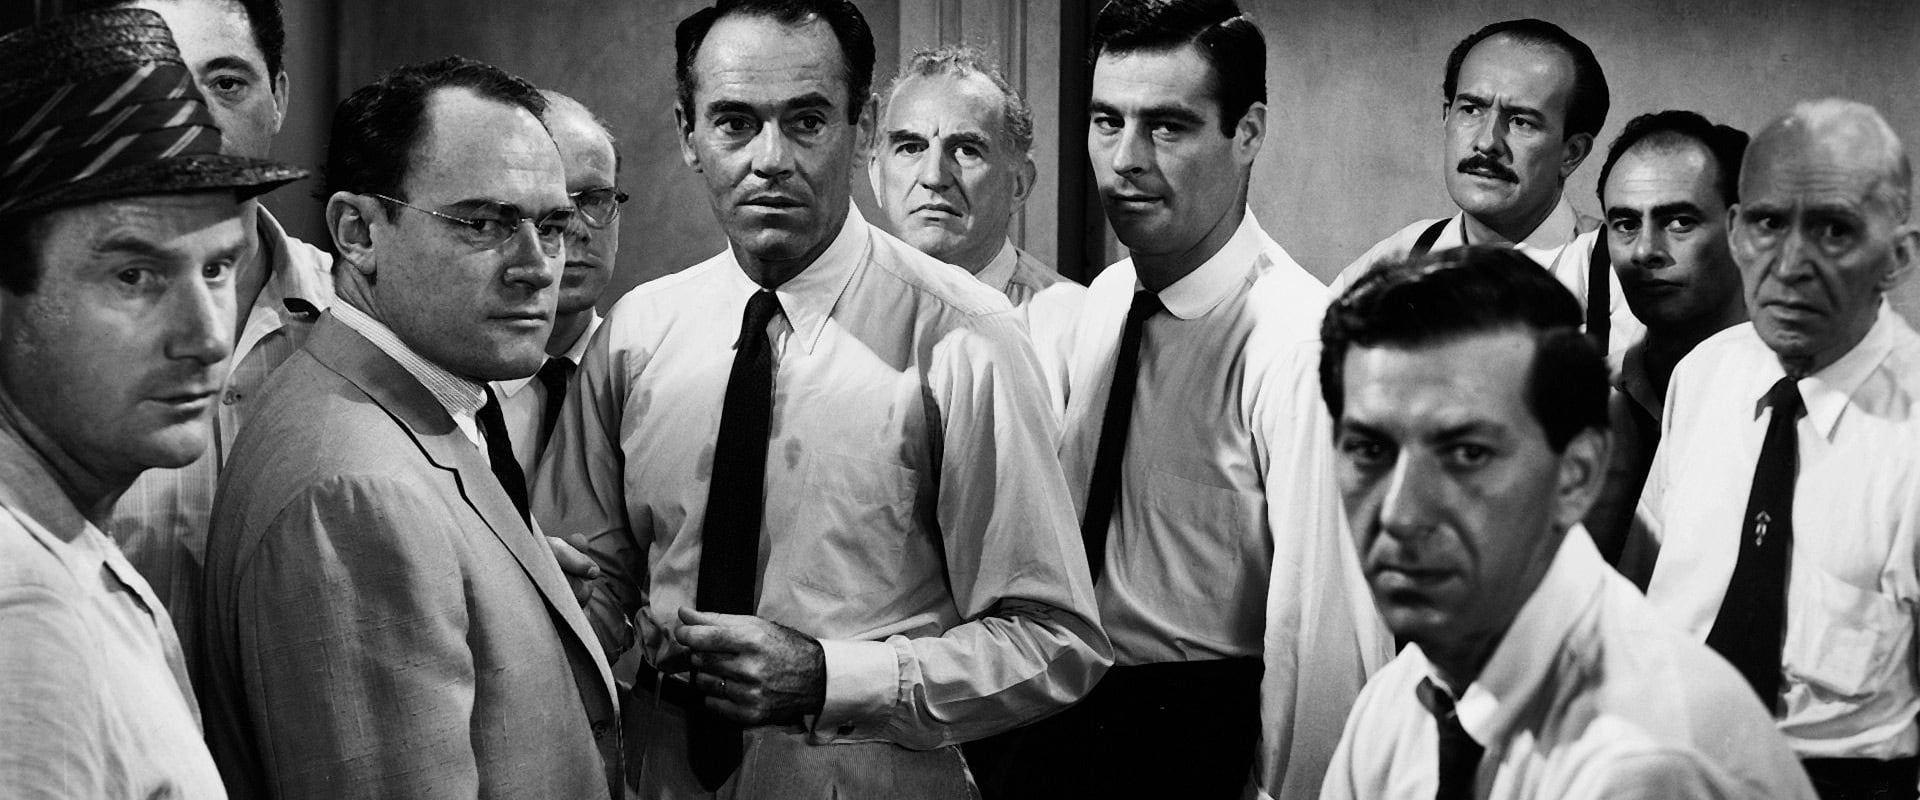 12 Angry Men 123Movies Watch Full Movie Online Stream